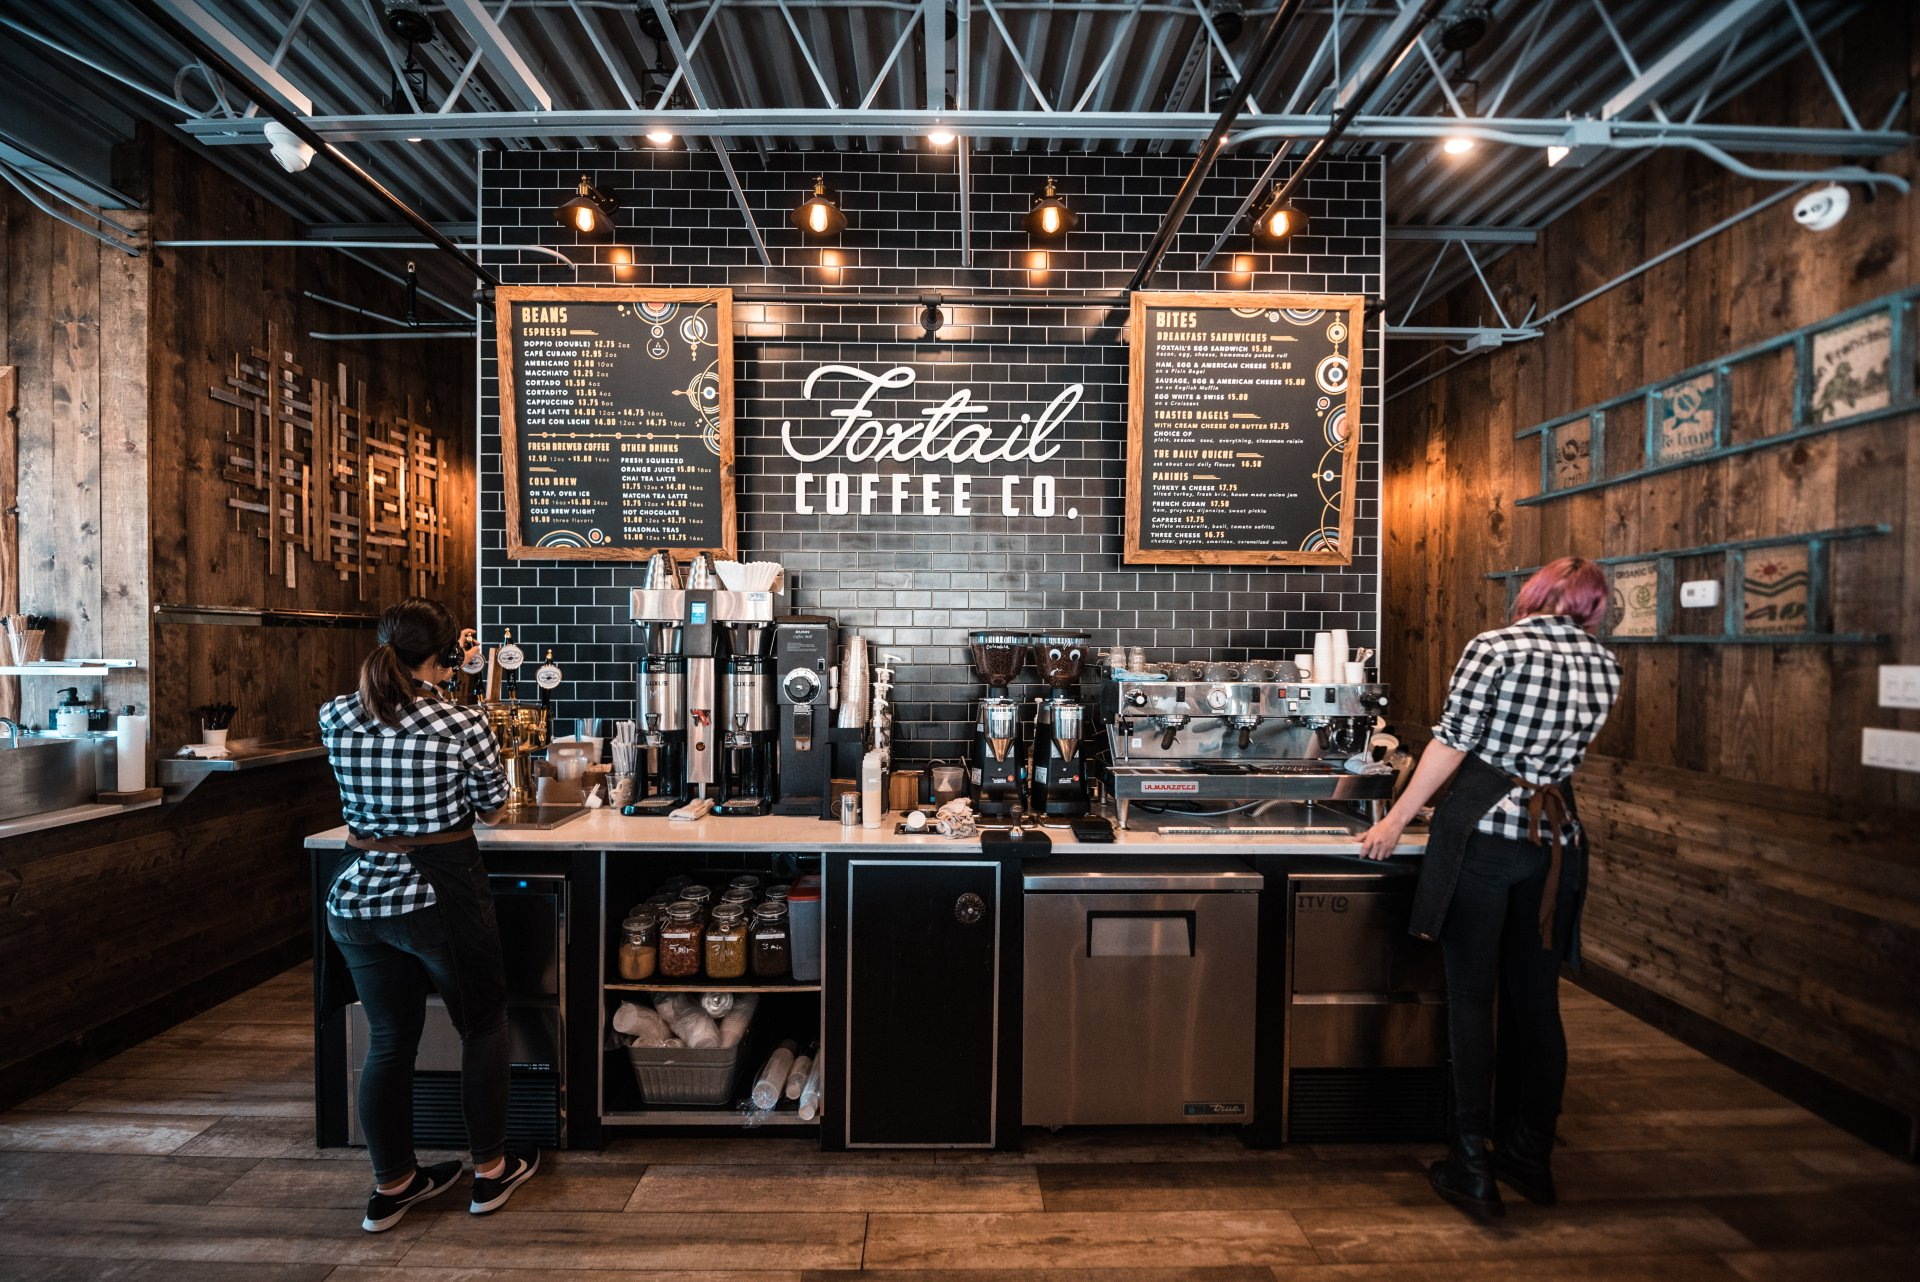 Foxtail Coffee Co Altamonte Springs